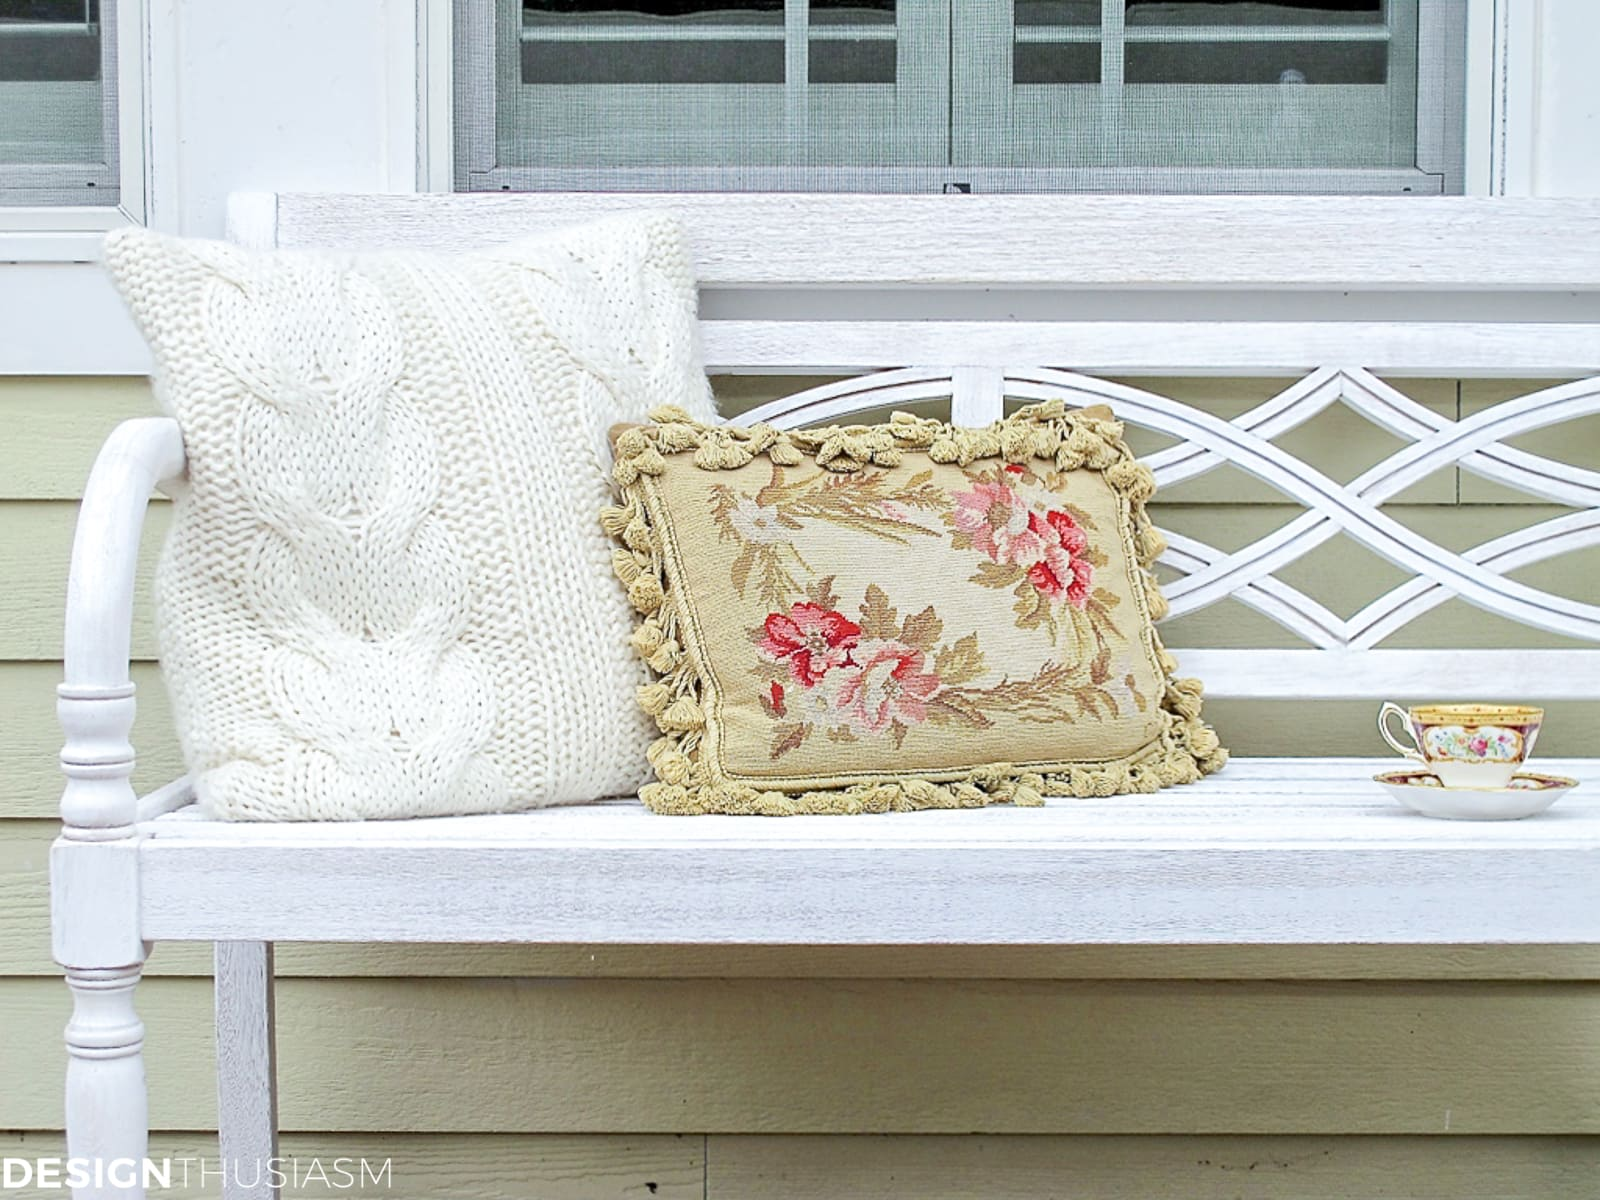 patio decor with white bench and pillows